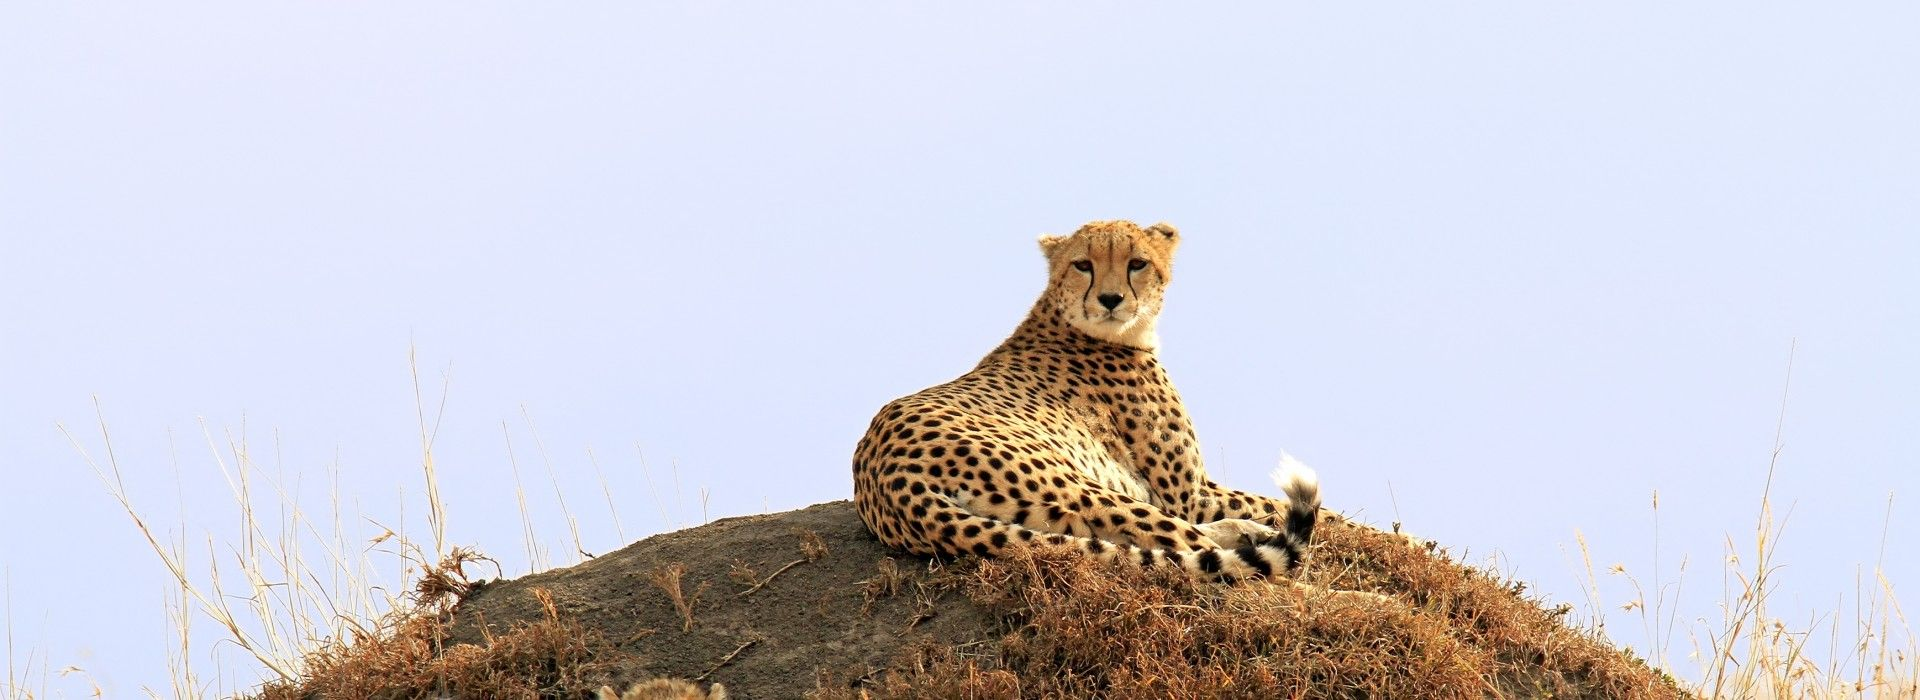 Luxury Tours in Africa